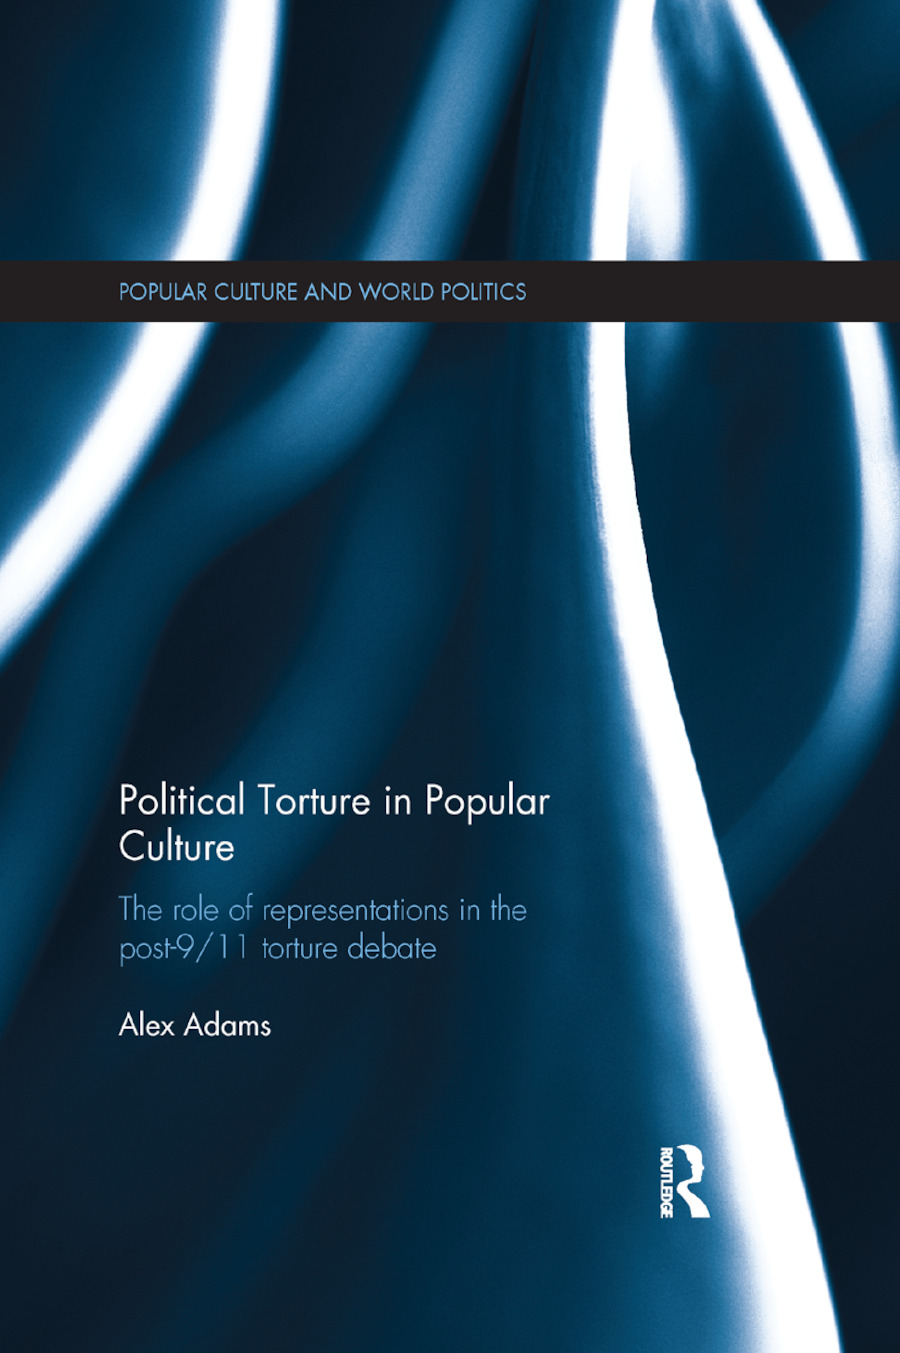 Political Torture in Popular Culture: The Role of Representations in the Post-9/11 Torture Debate book cover